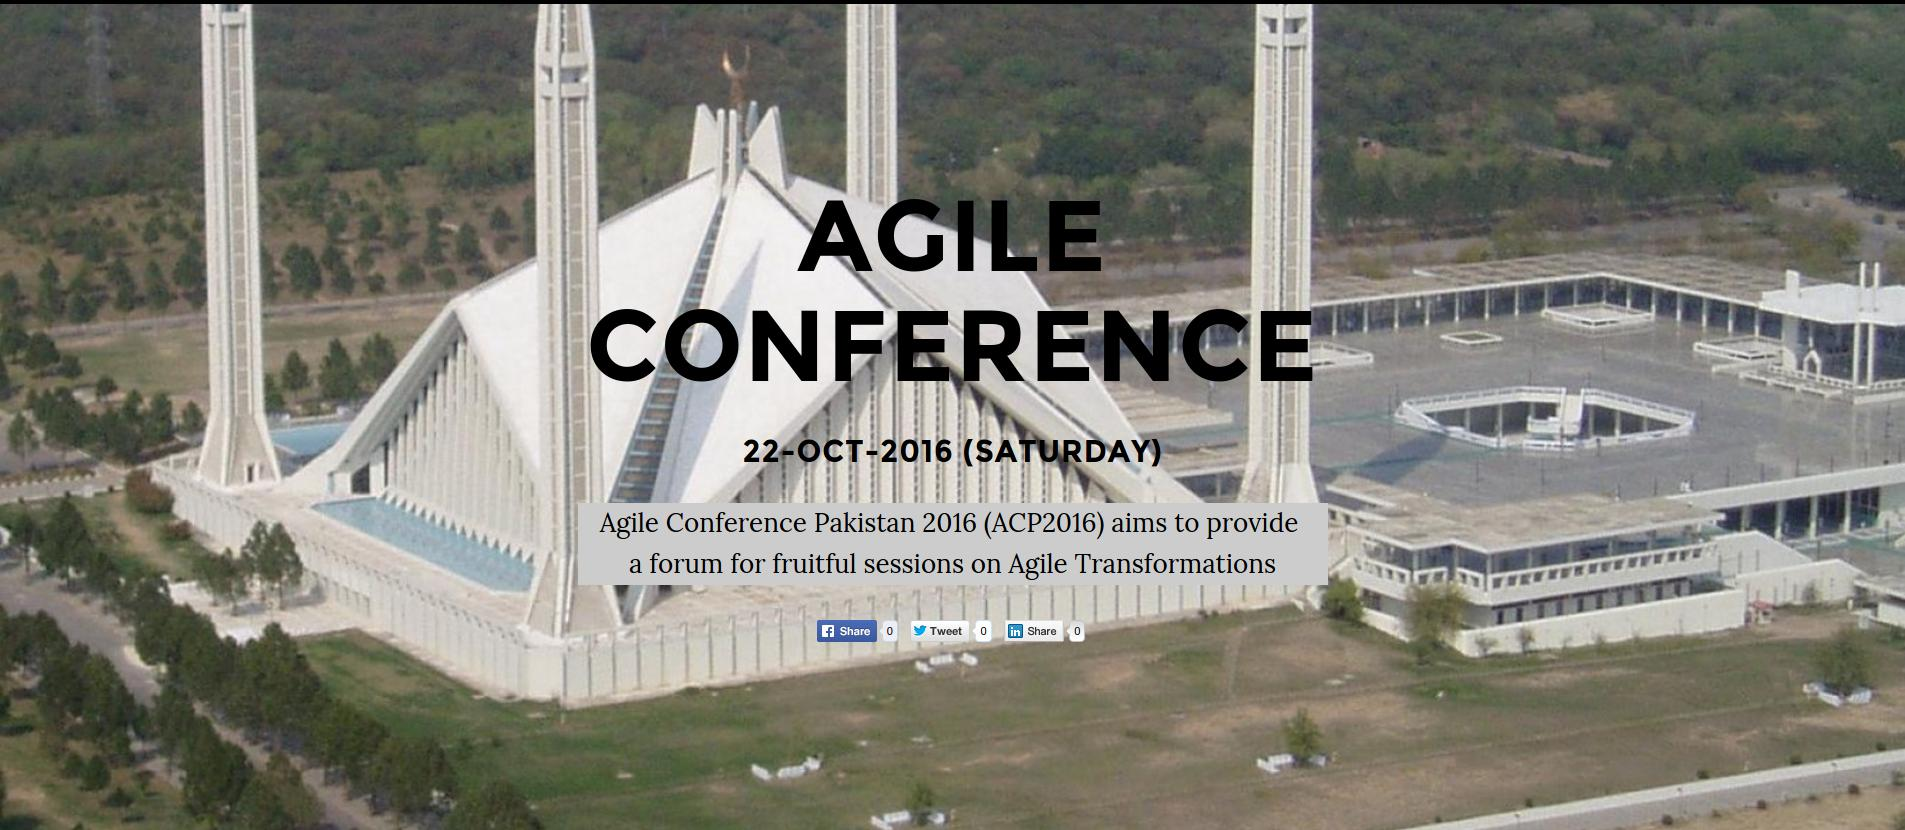 Agile Conference Pakistan - ACP2016